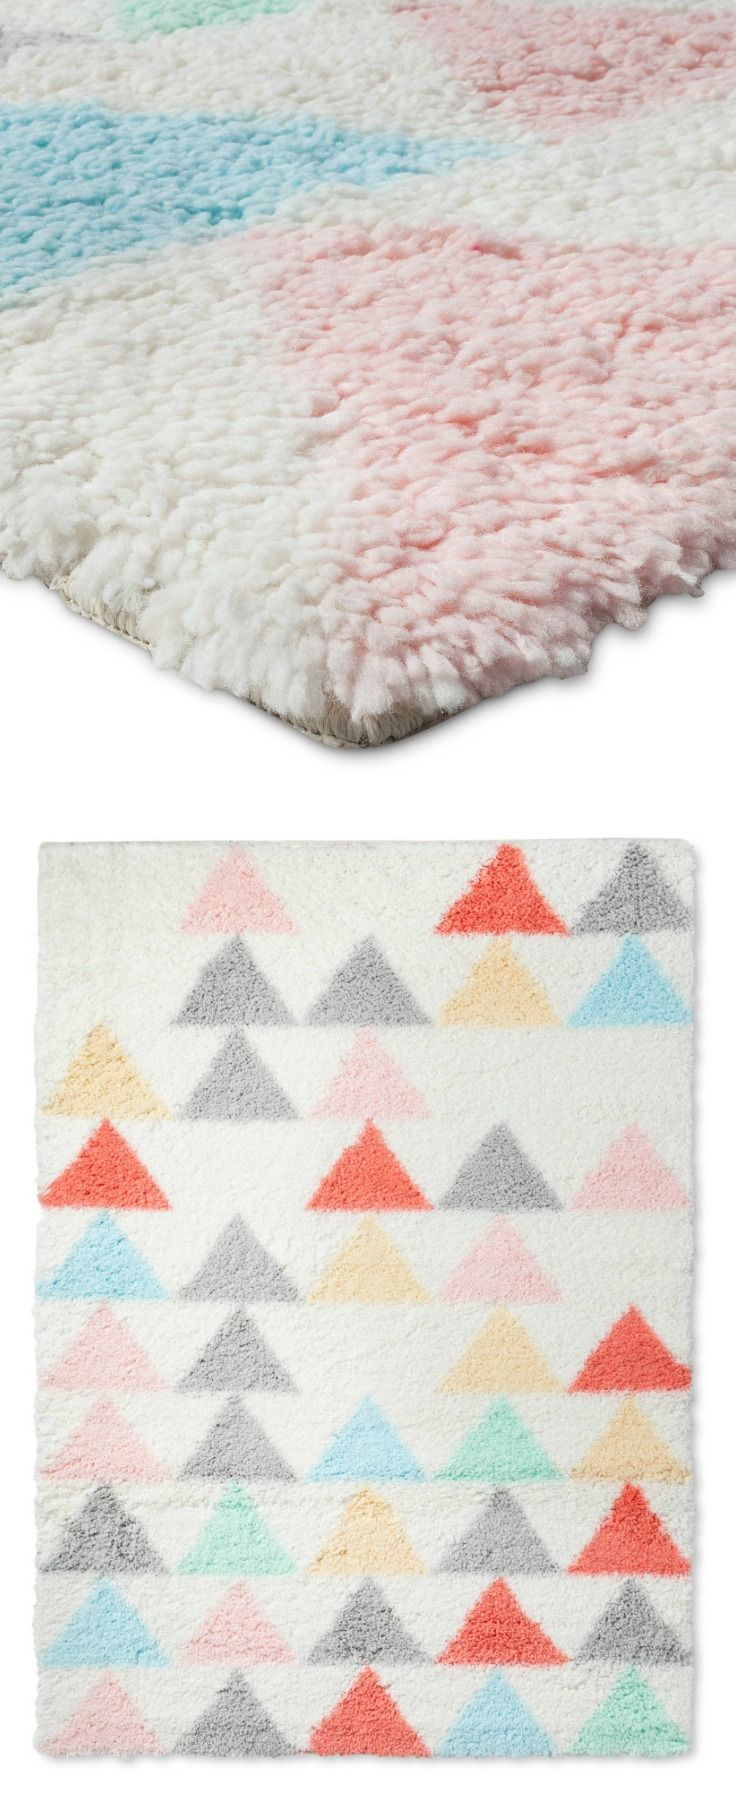 Dorm Room Rugs: 684 Best Images About College Dorm Room Ideas